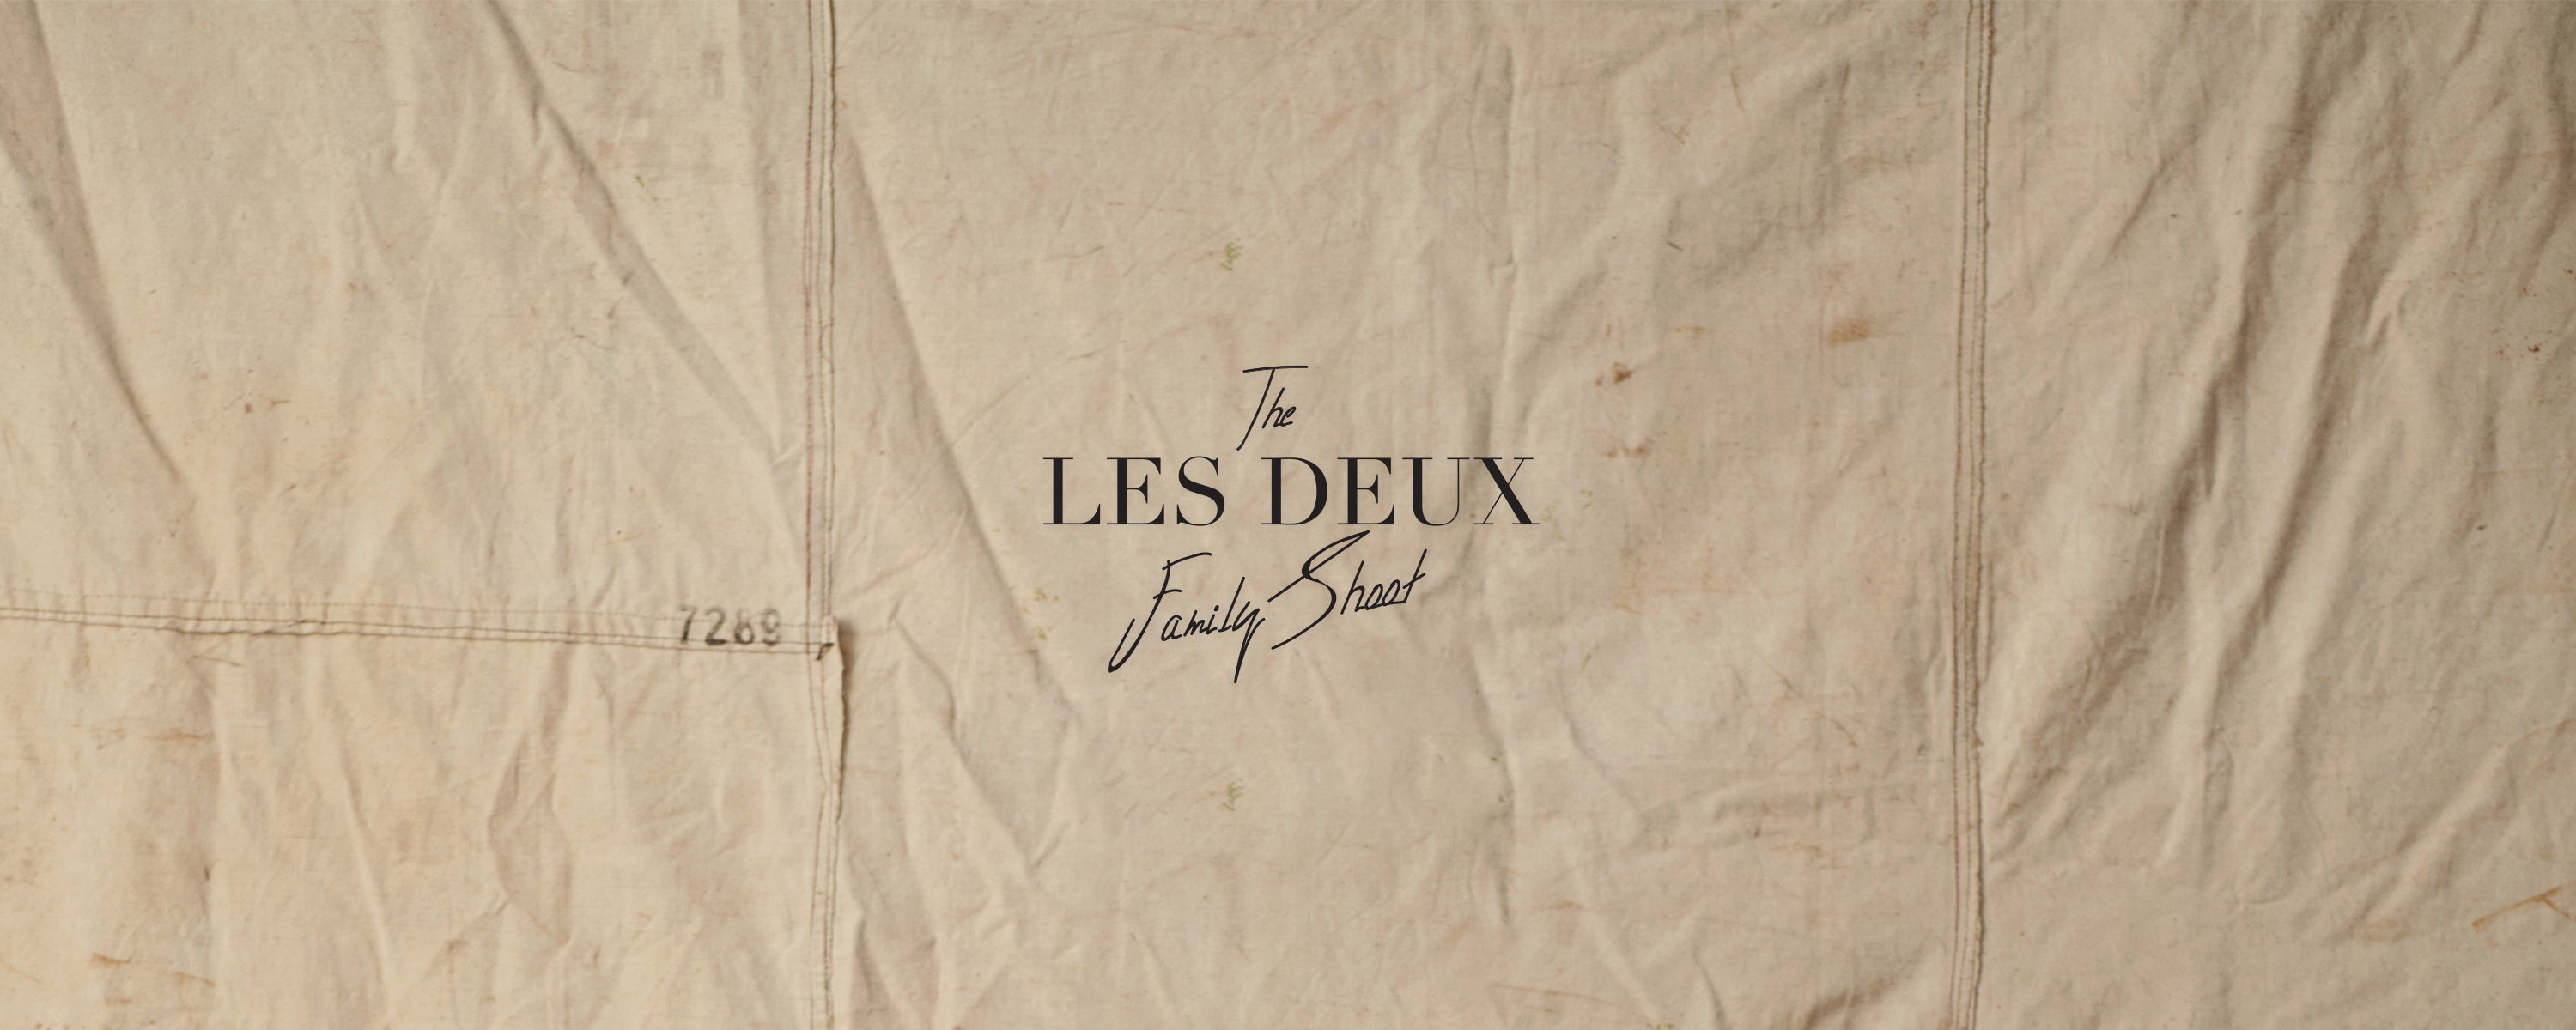 The Les Deux Family Shoot, Second Part